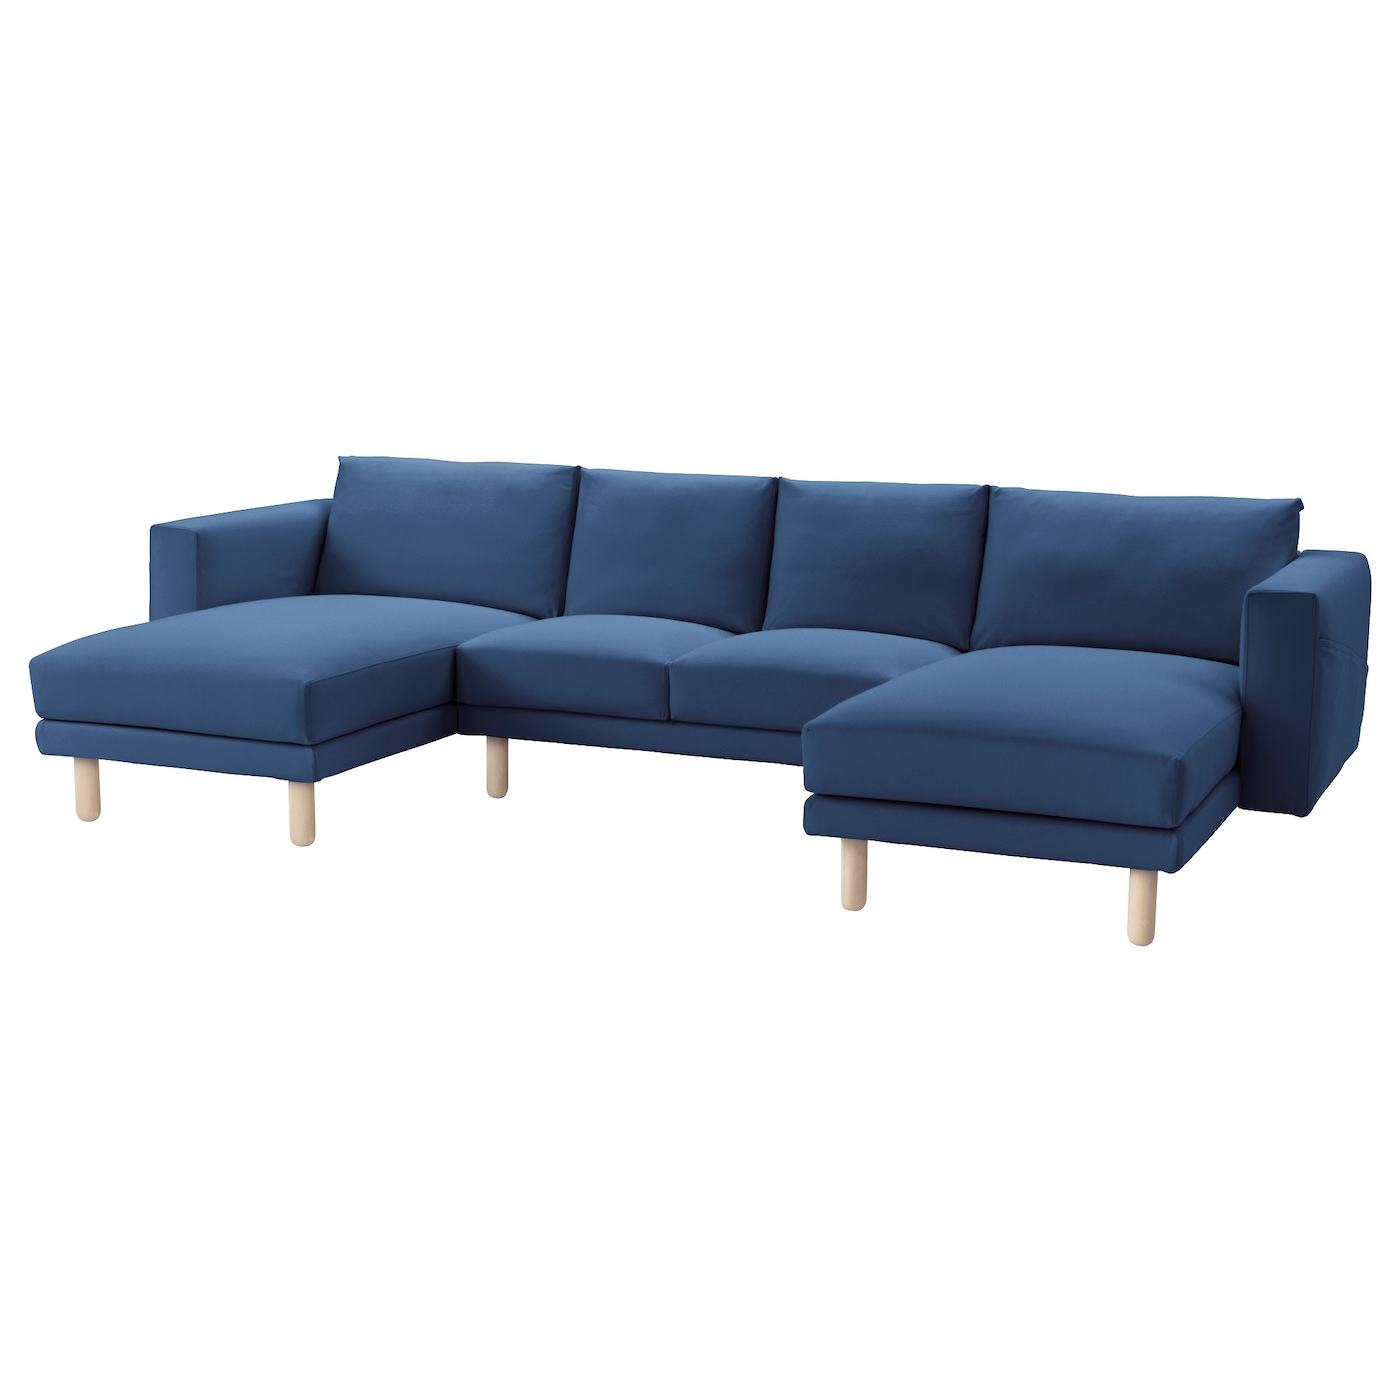 Fabric modular sofas ikea for 2 5 seater sofa with chaise